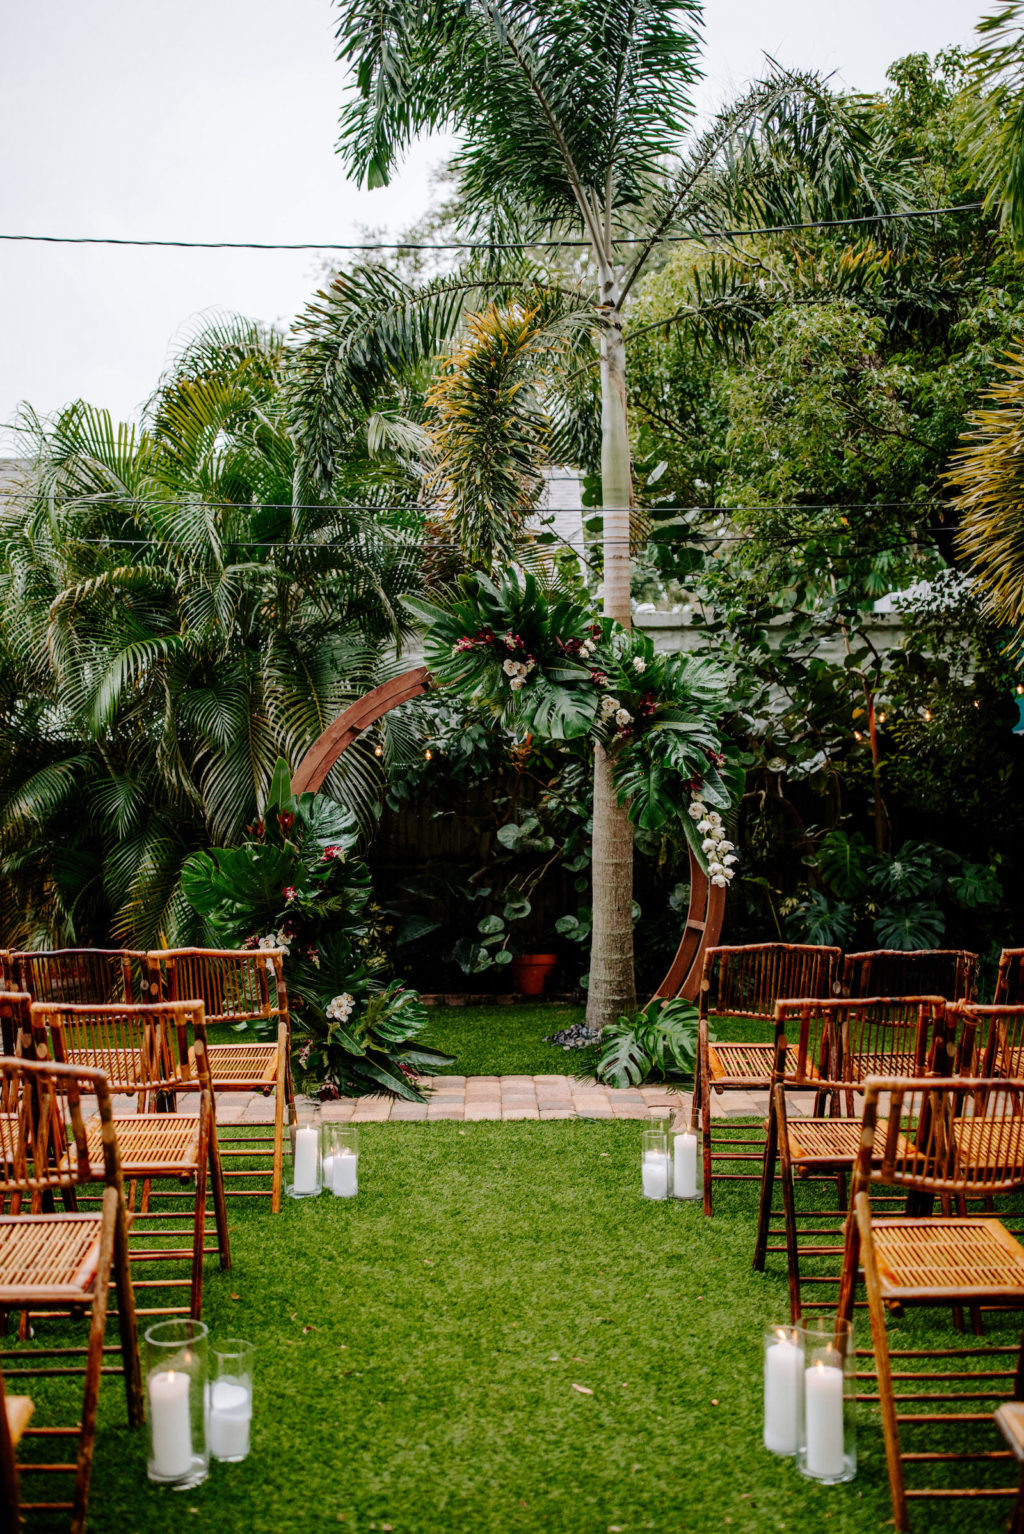 Outdoor Florida Wedding, Backyard Ceremony with Jungle Inspired Decor with Bamboo Circle Arch and Folding Chair Rentals, Bright Greenery with pops of Pink Florals and White Orchids | St. Petersburg Wedding Planner Parties A'La Carte